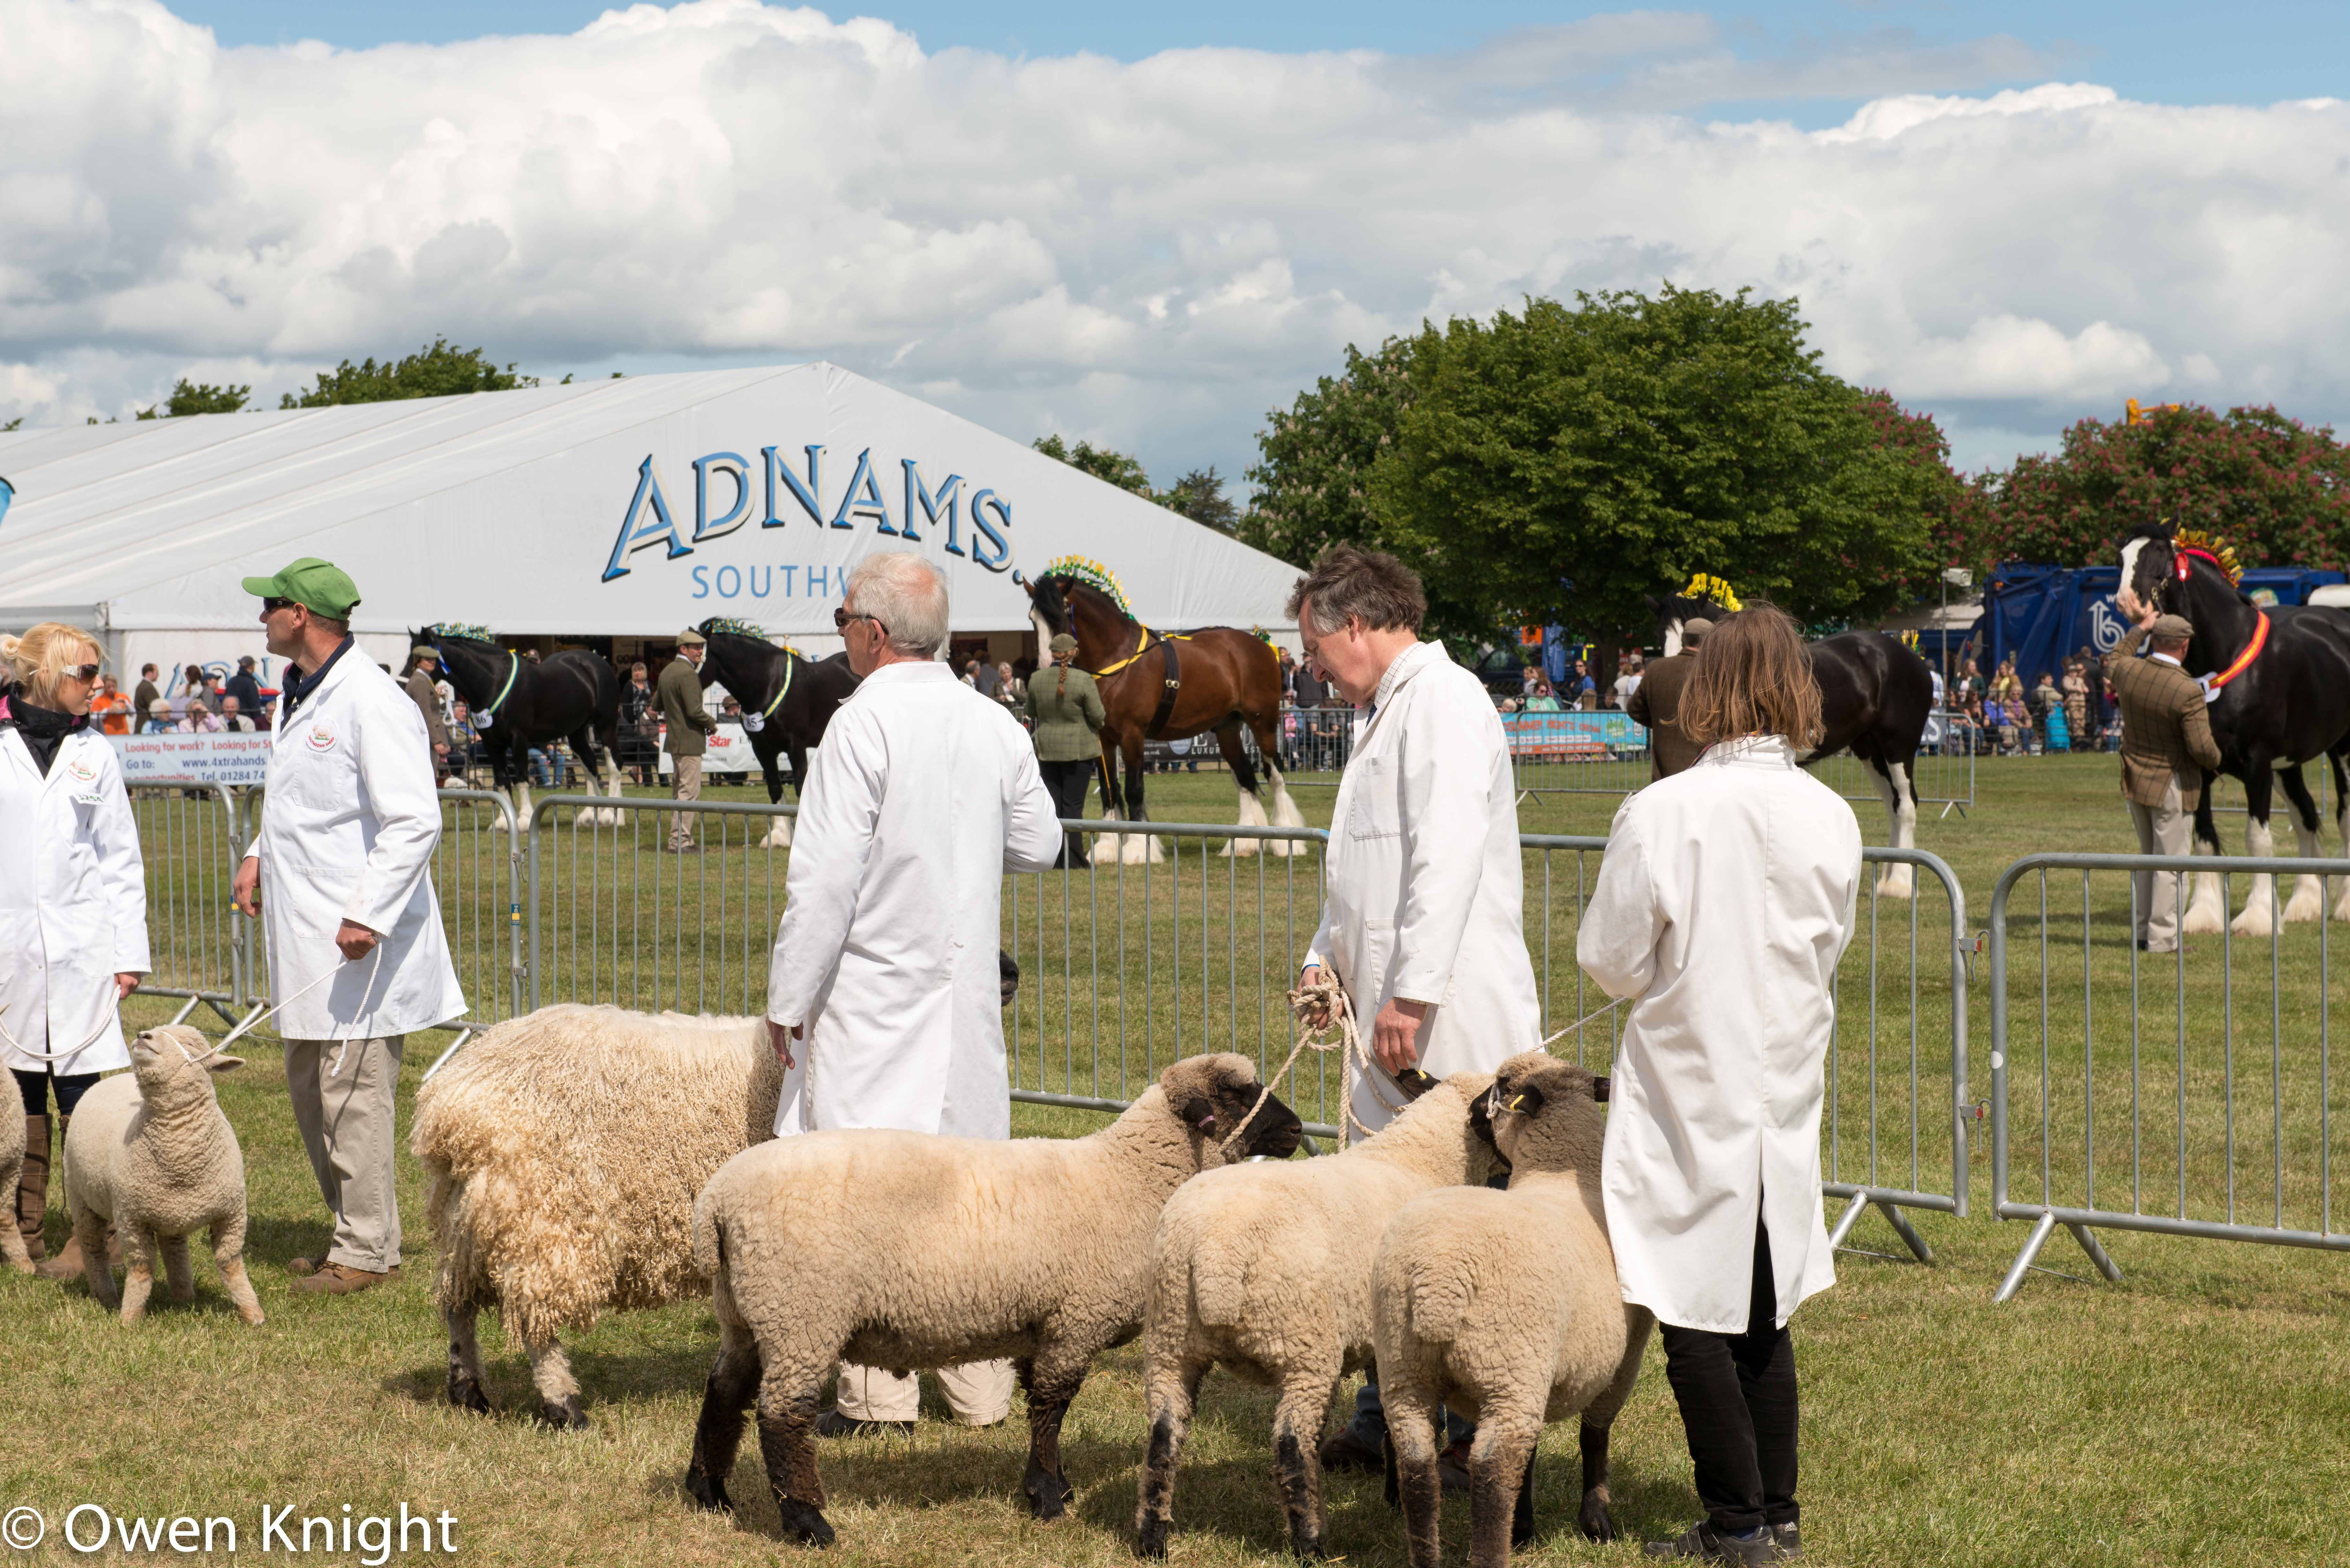 May 2015: The Suffolk Show